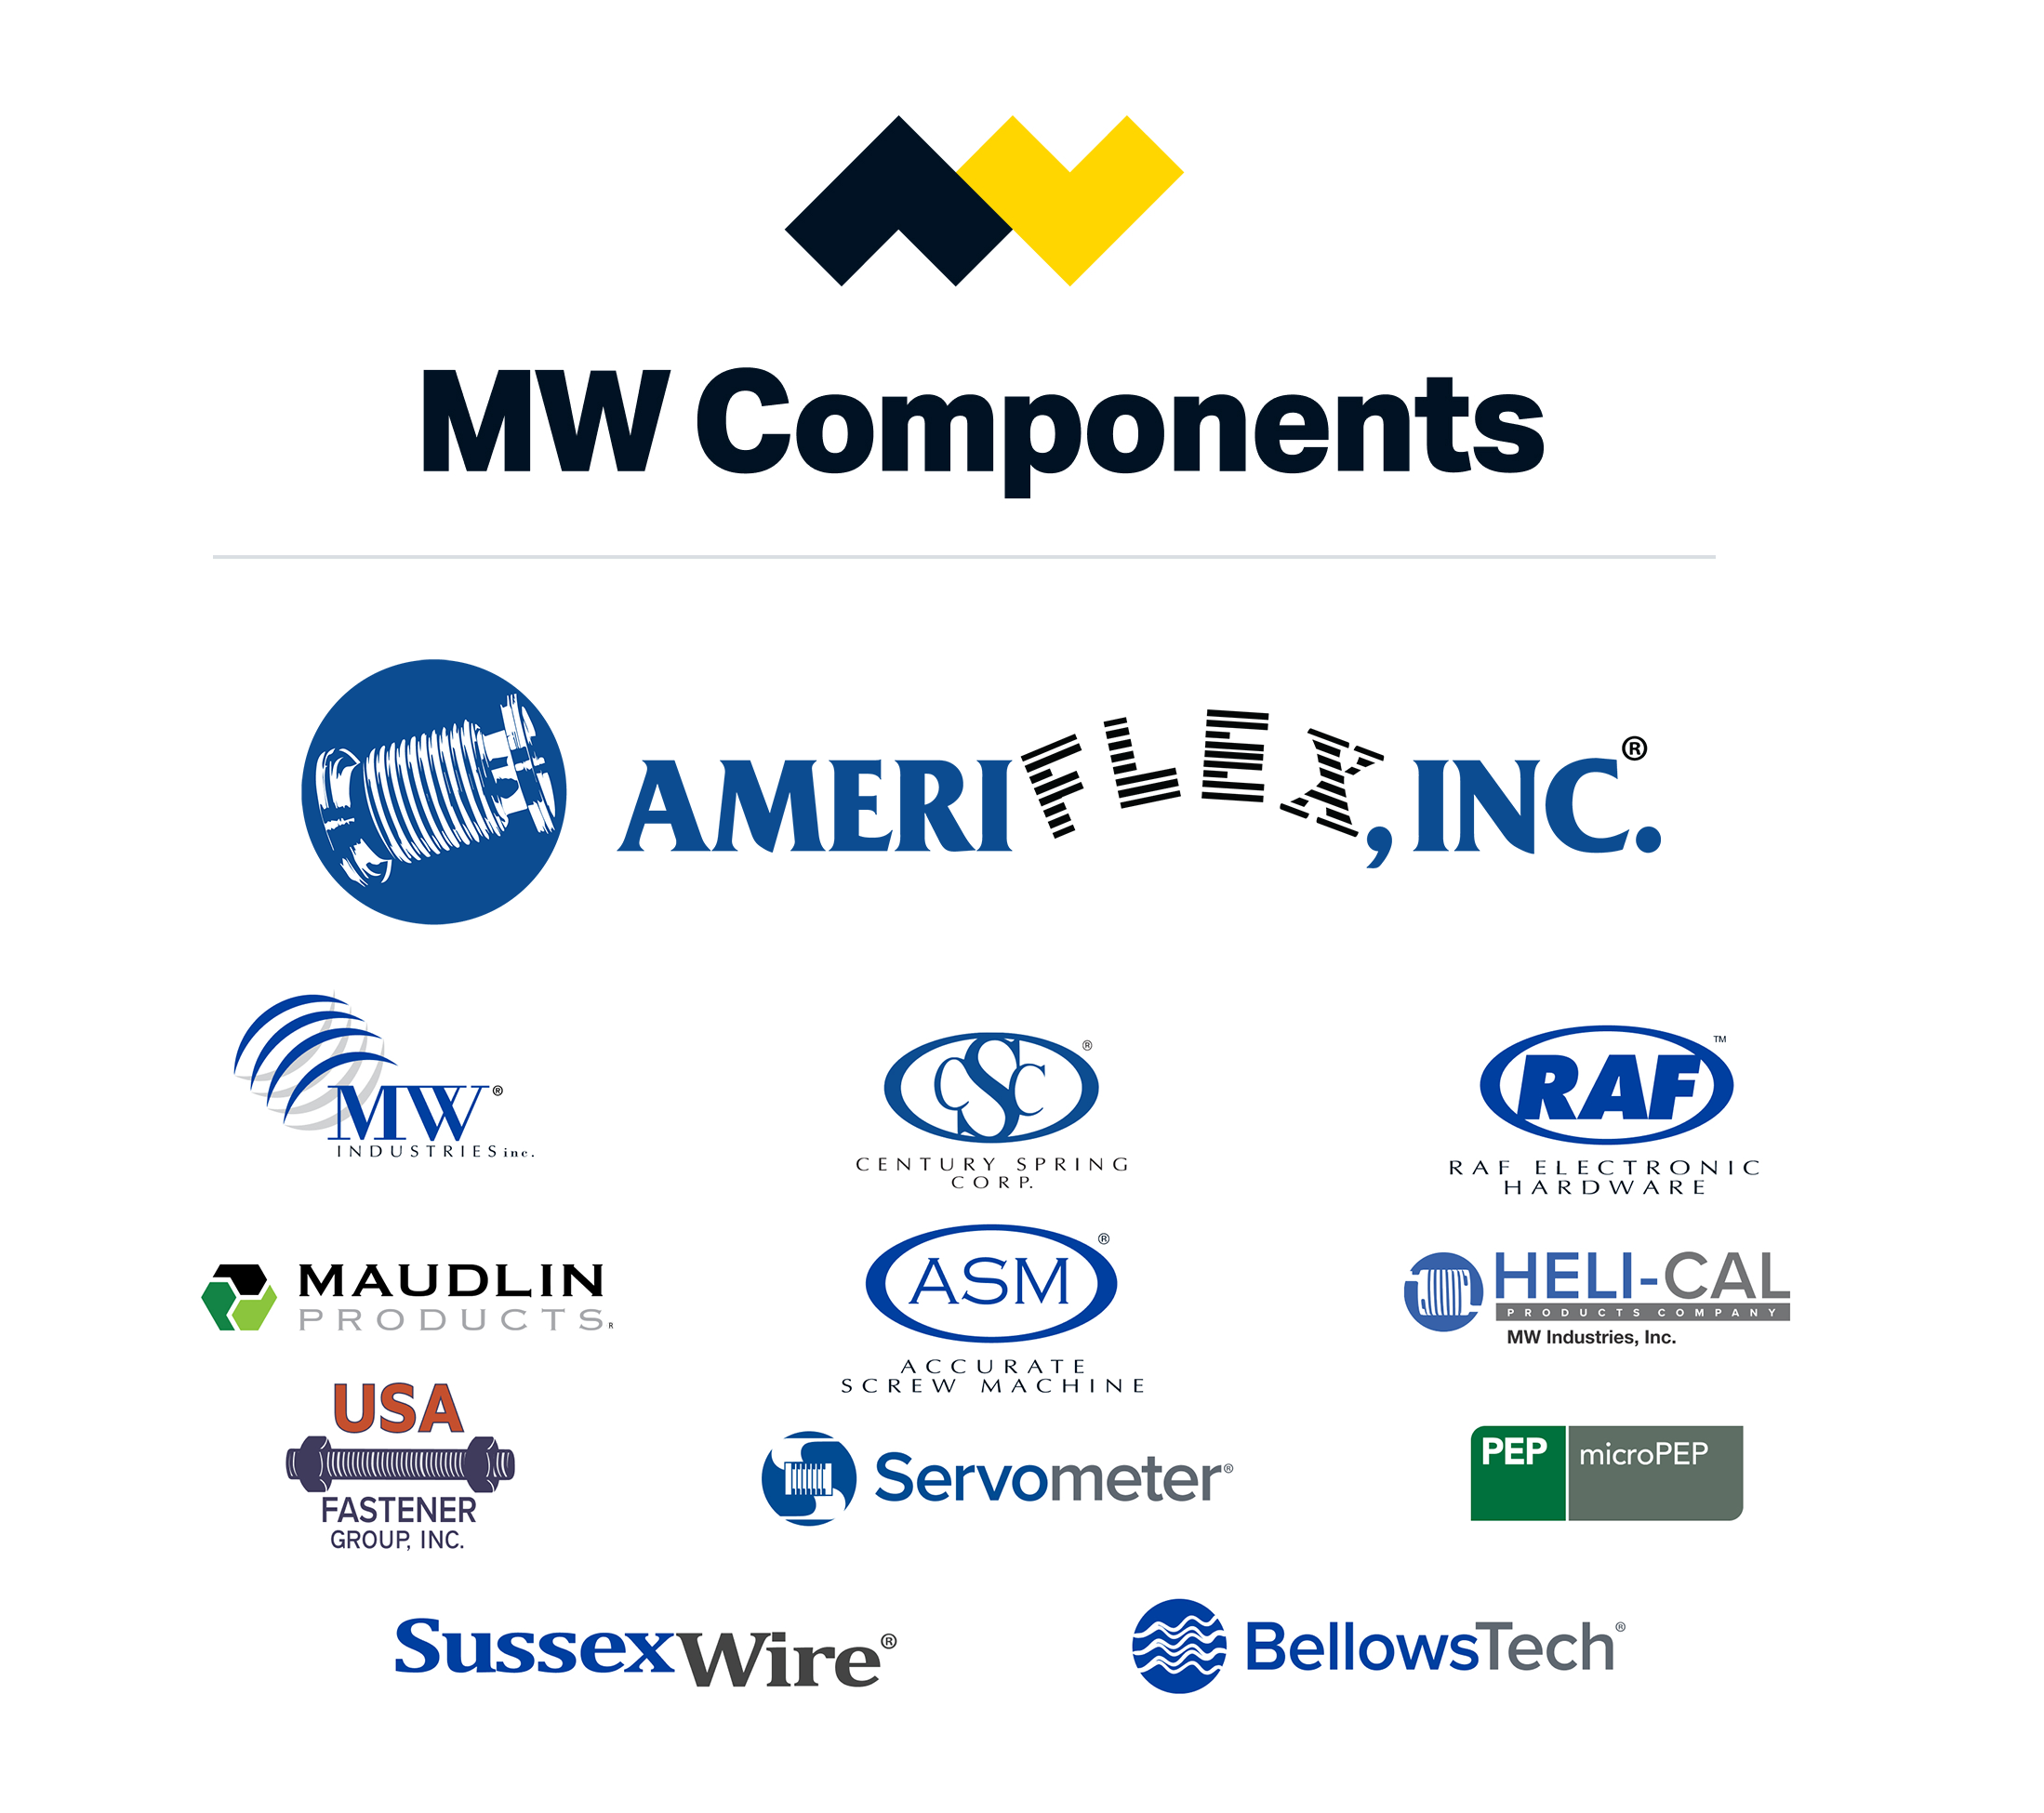 Ameriflex is now part of MW Components!